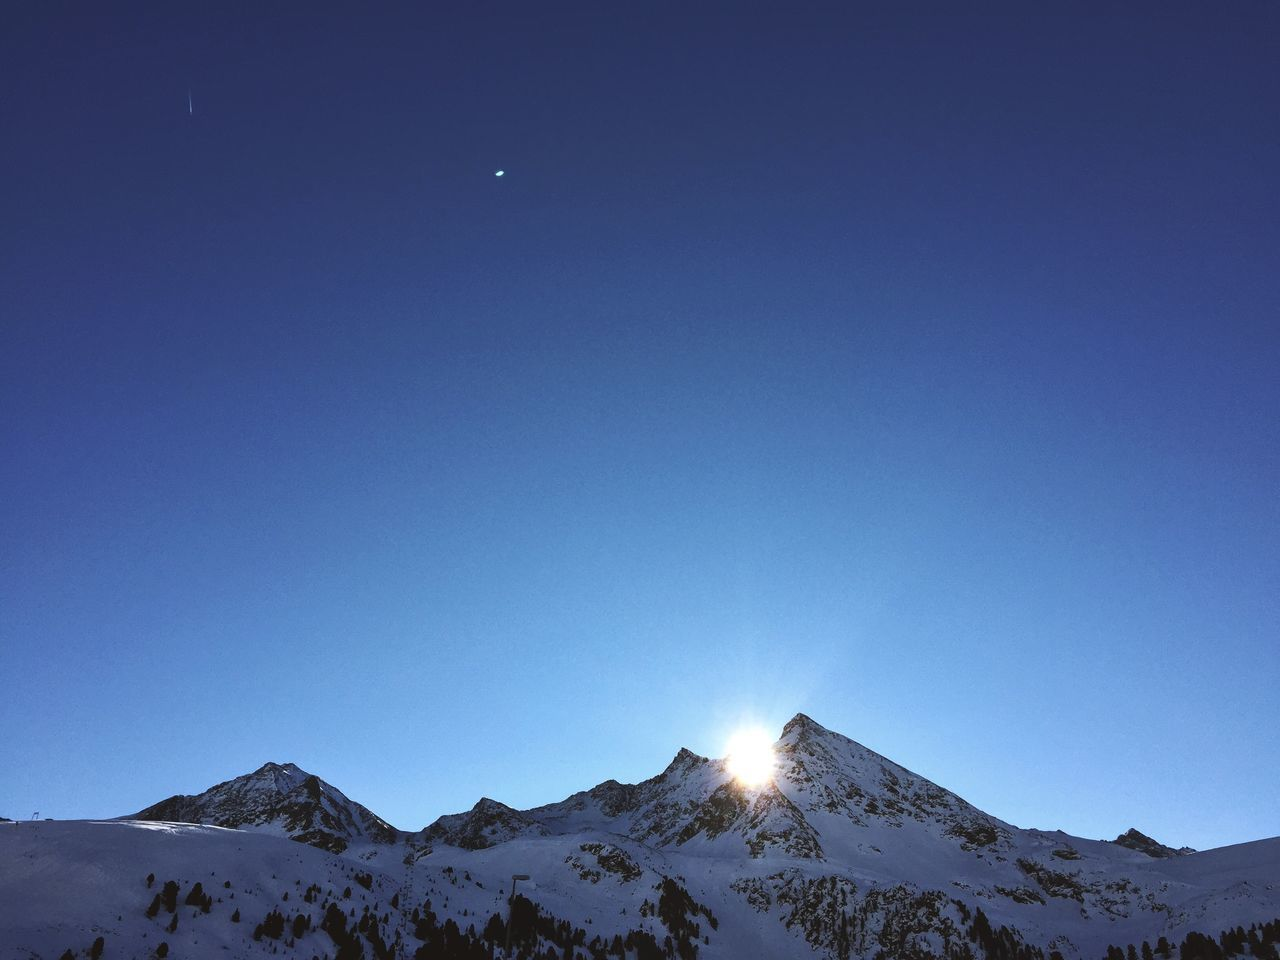 mountain, snow, nature, cold temperature, clear sky, winter, tranquility, blue, beauty in nature, tranquil scene, scenics, copy space, mountain range, outdoors, snowcapped mountain, no people, moon, landscape, day, sky